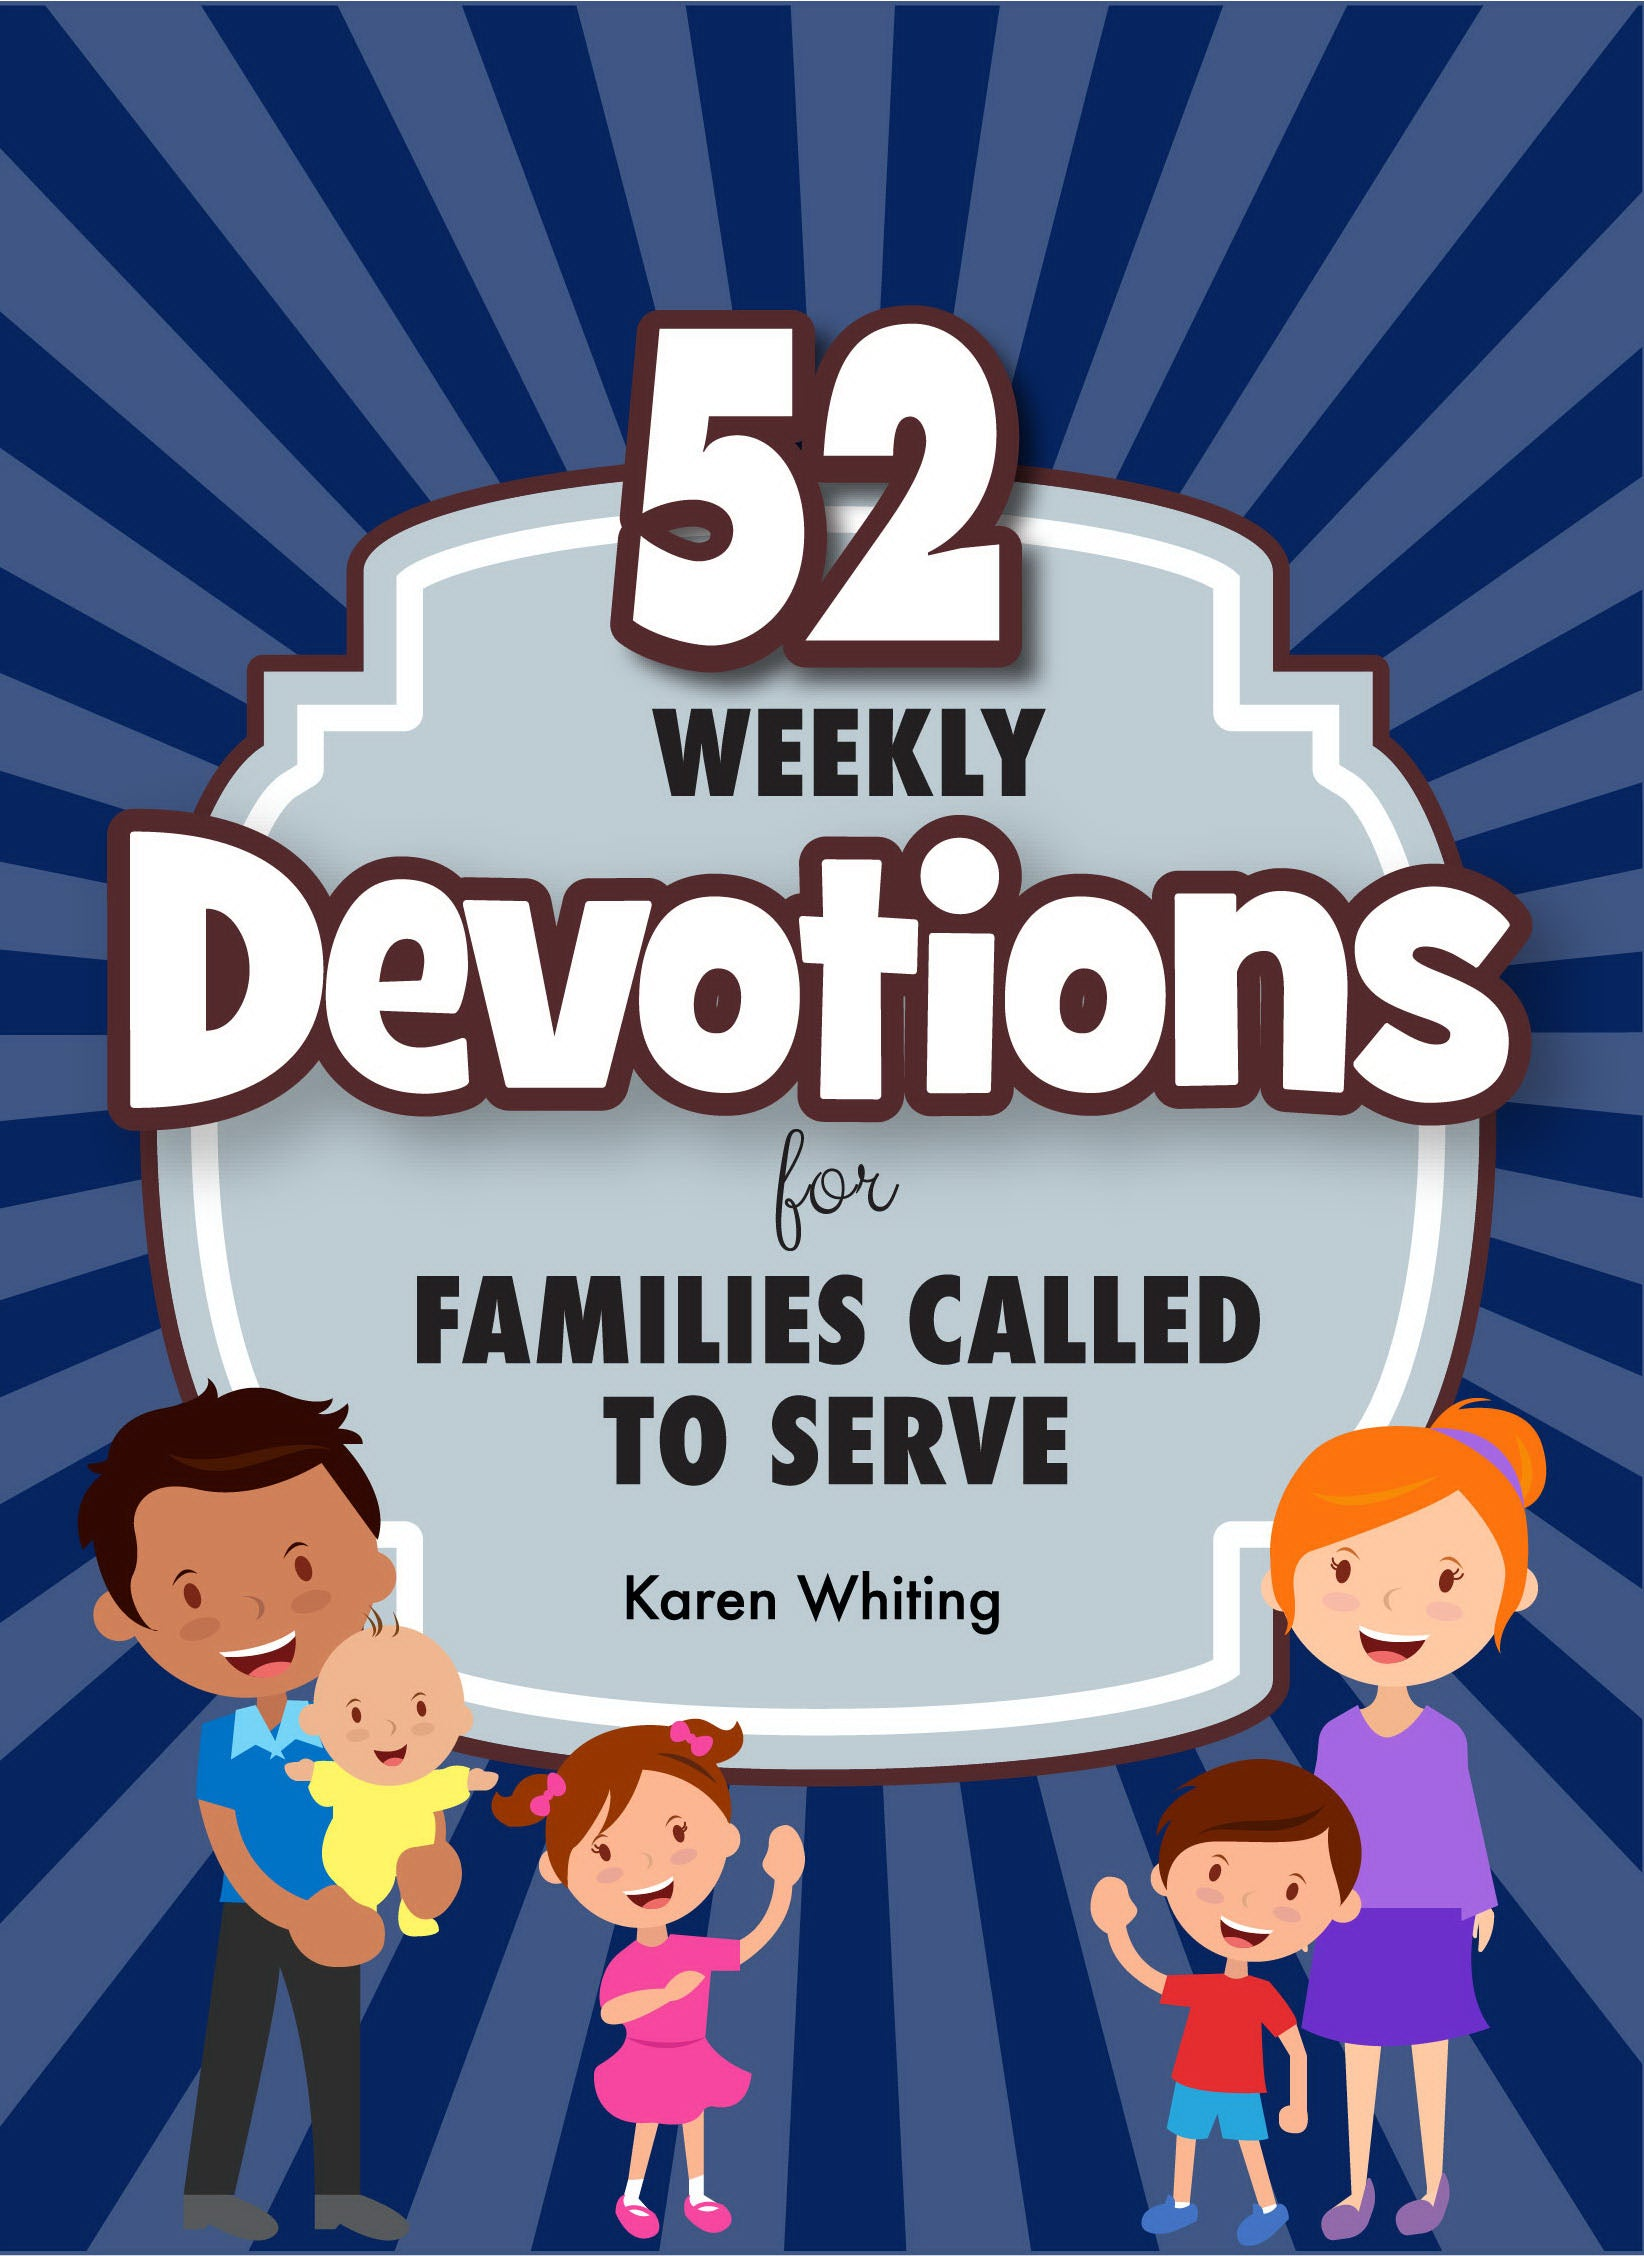 52 Weekly Devotions For Families Called To Serve